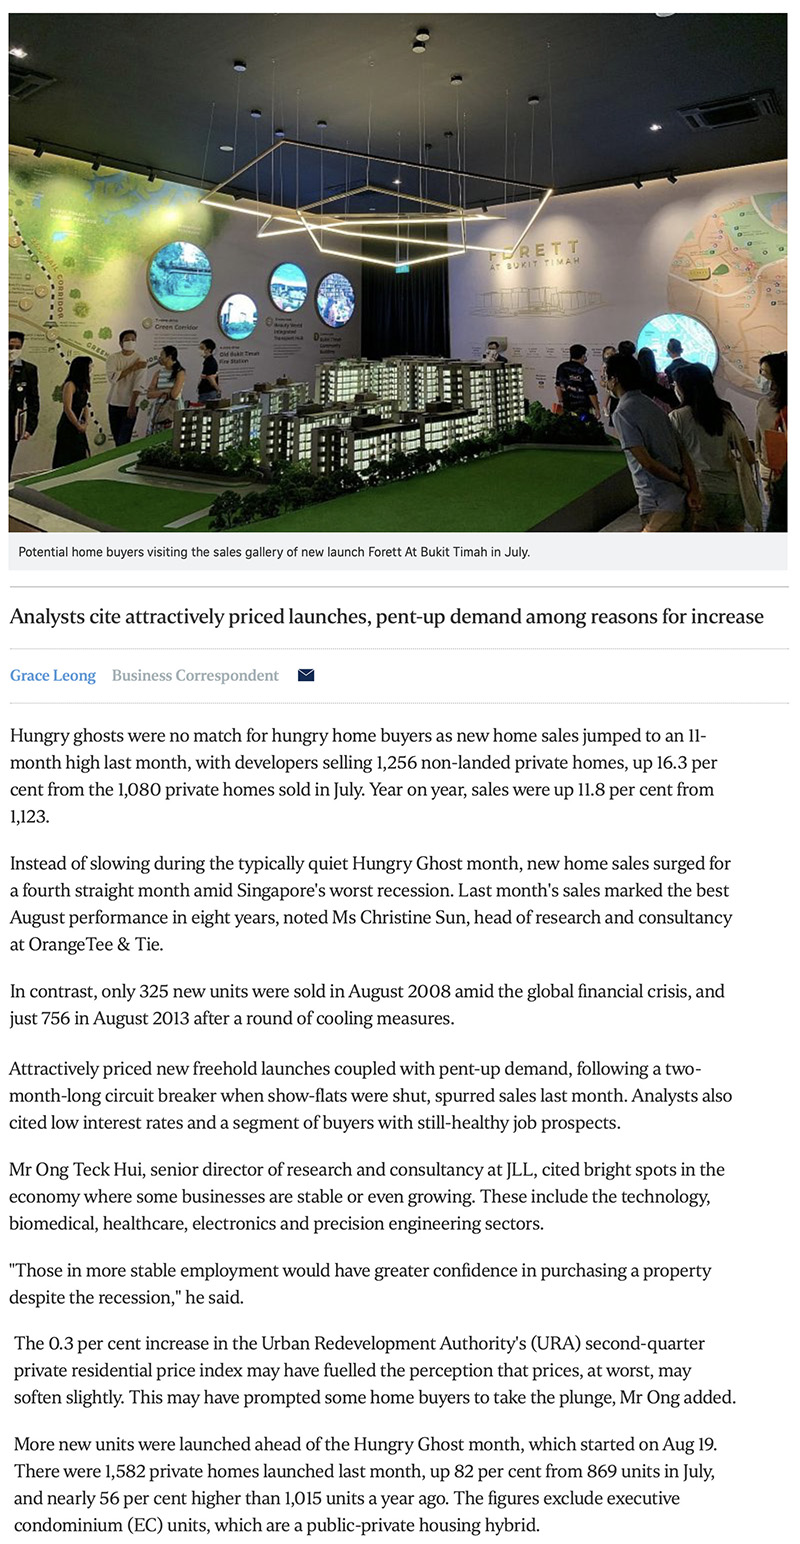 Penrose - New home sales surge to 11-month high in August 1